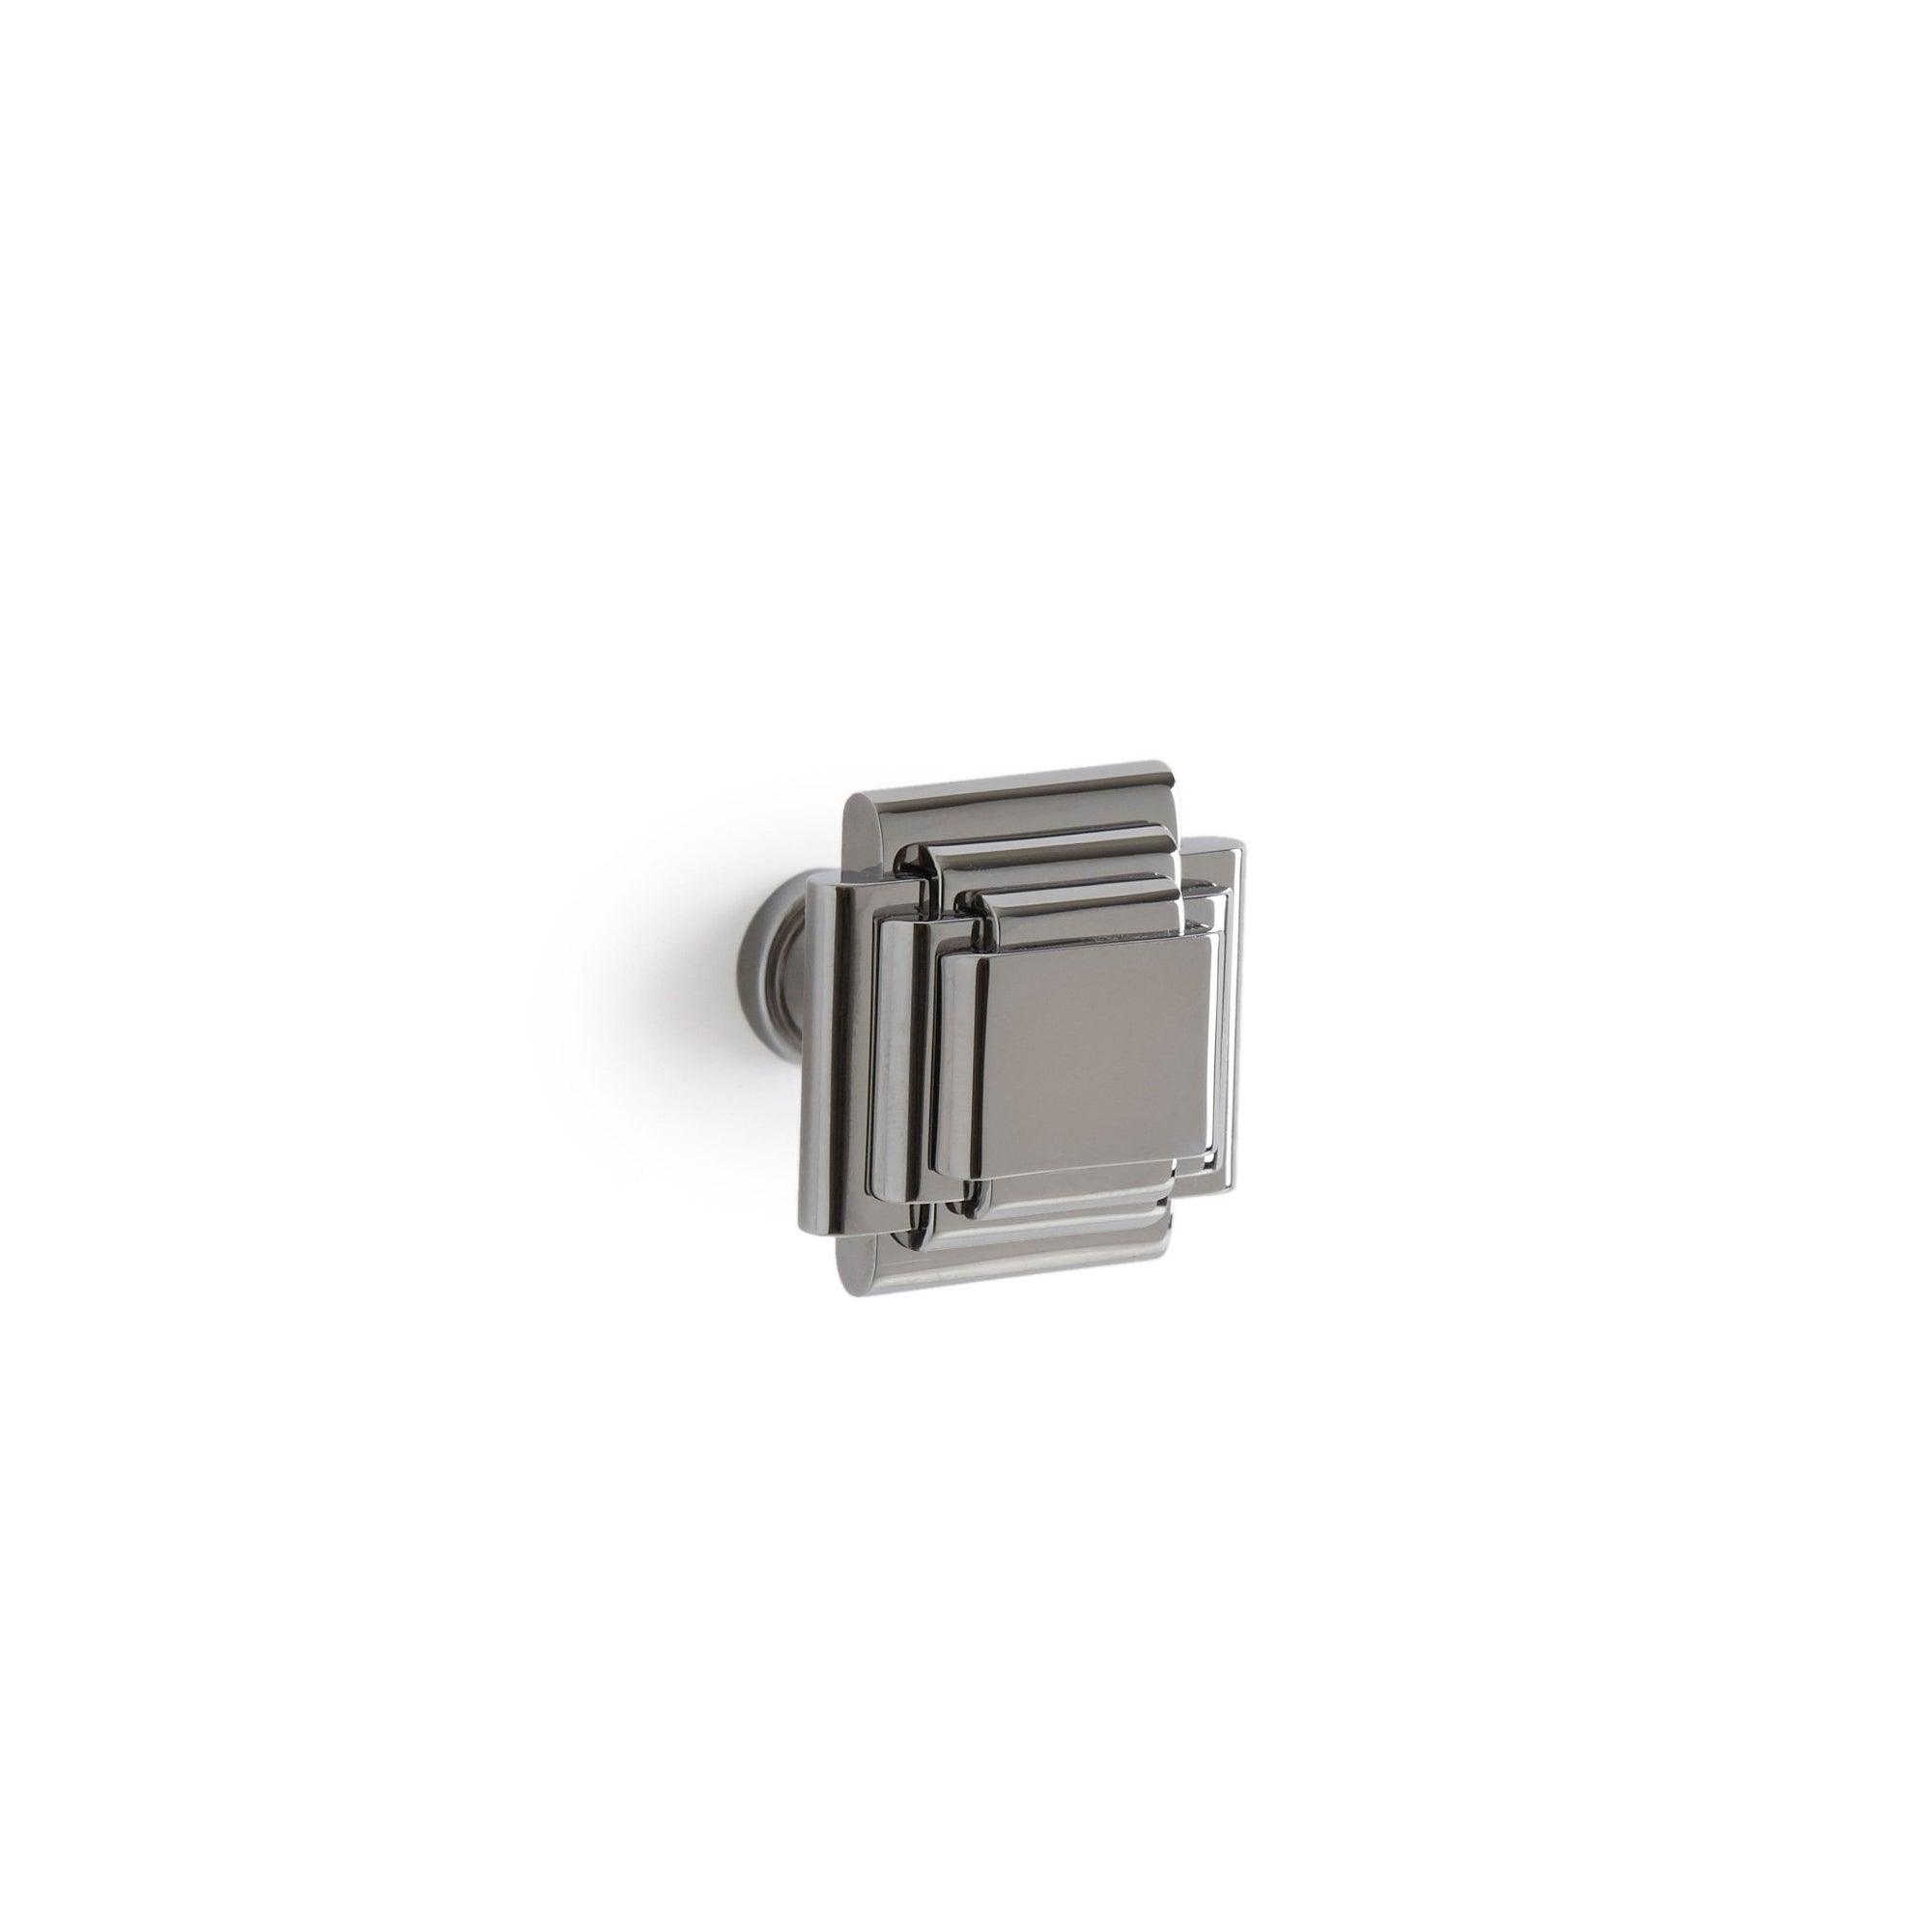 2015A-11/4-CP Sherle Wagner International Nouveau Cabinet & Drawer Knob in Polished Chrome metal finish